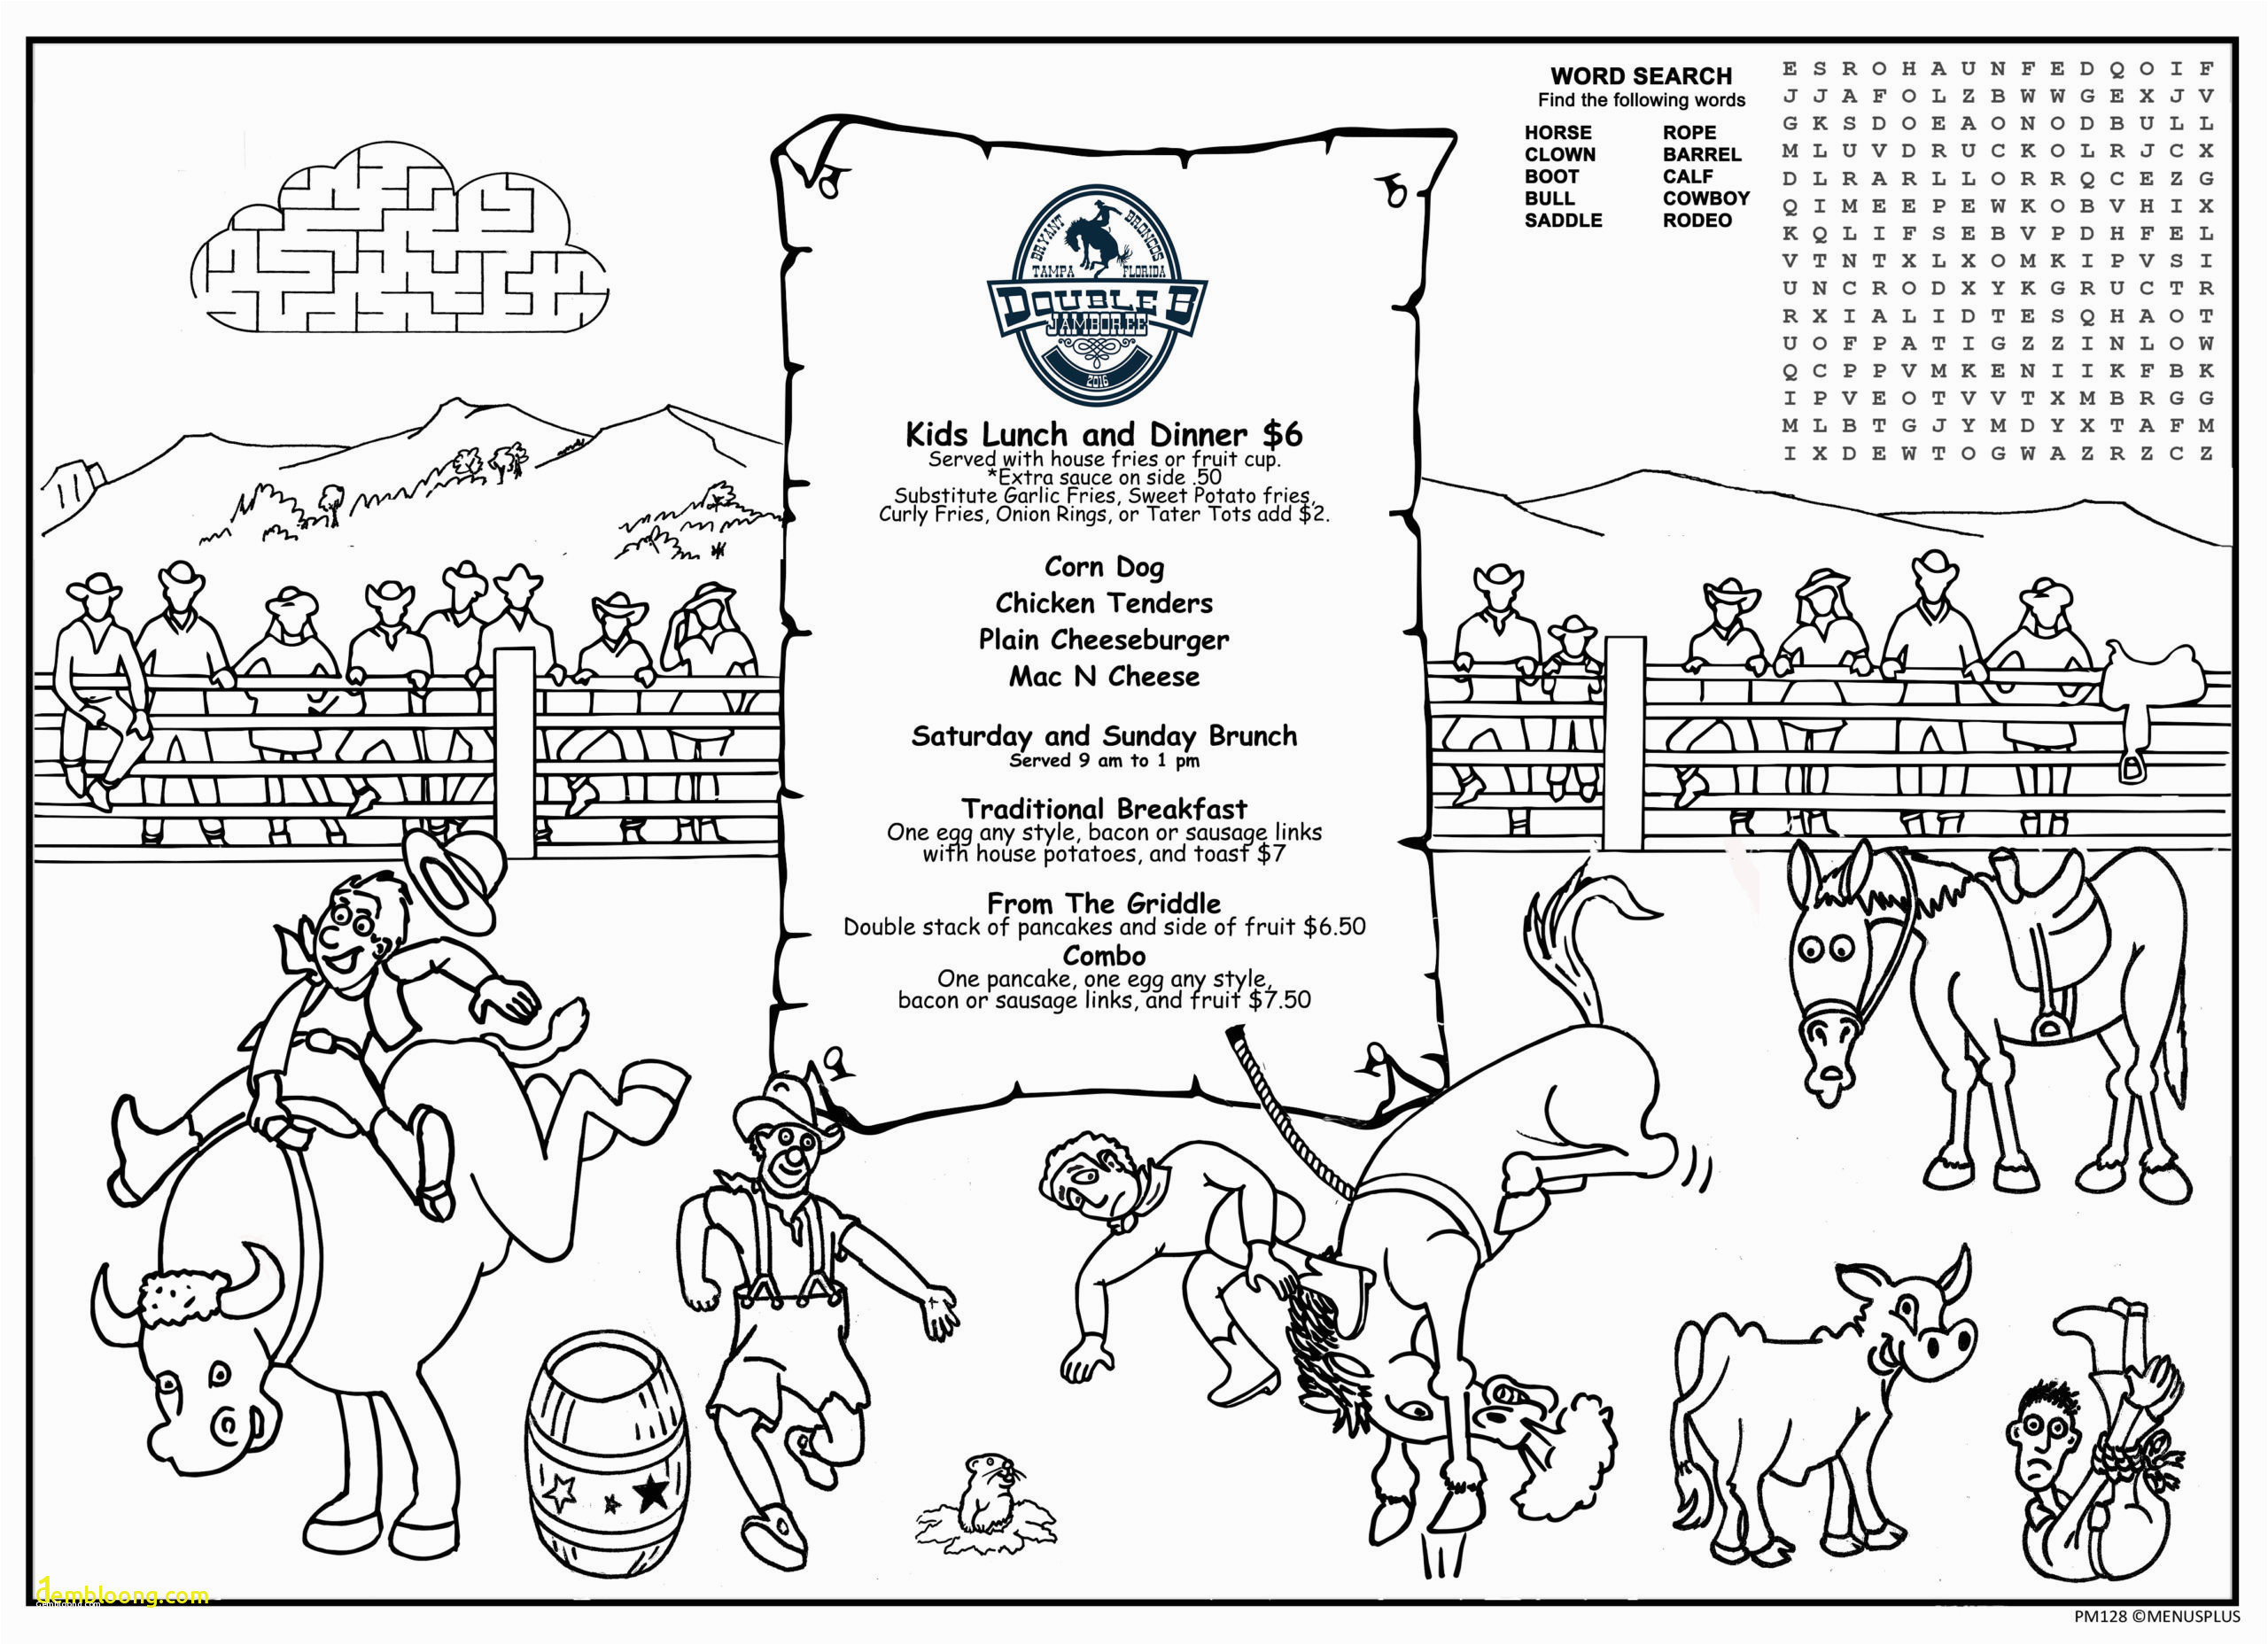 hard colouring pages for adults beautiful coloring pages free printable color by number for adults of hard colouring pages for adults